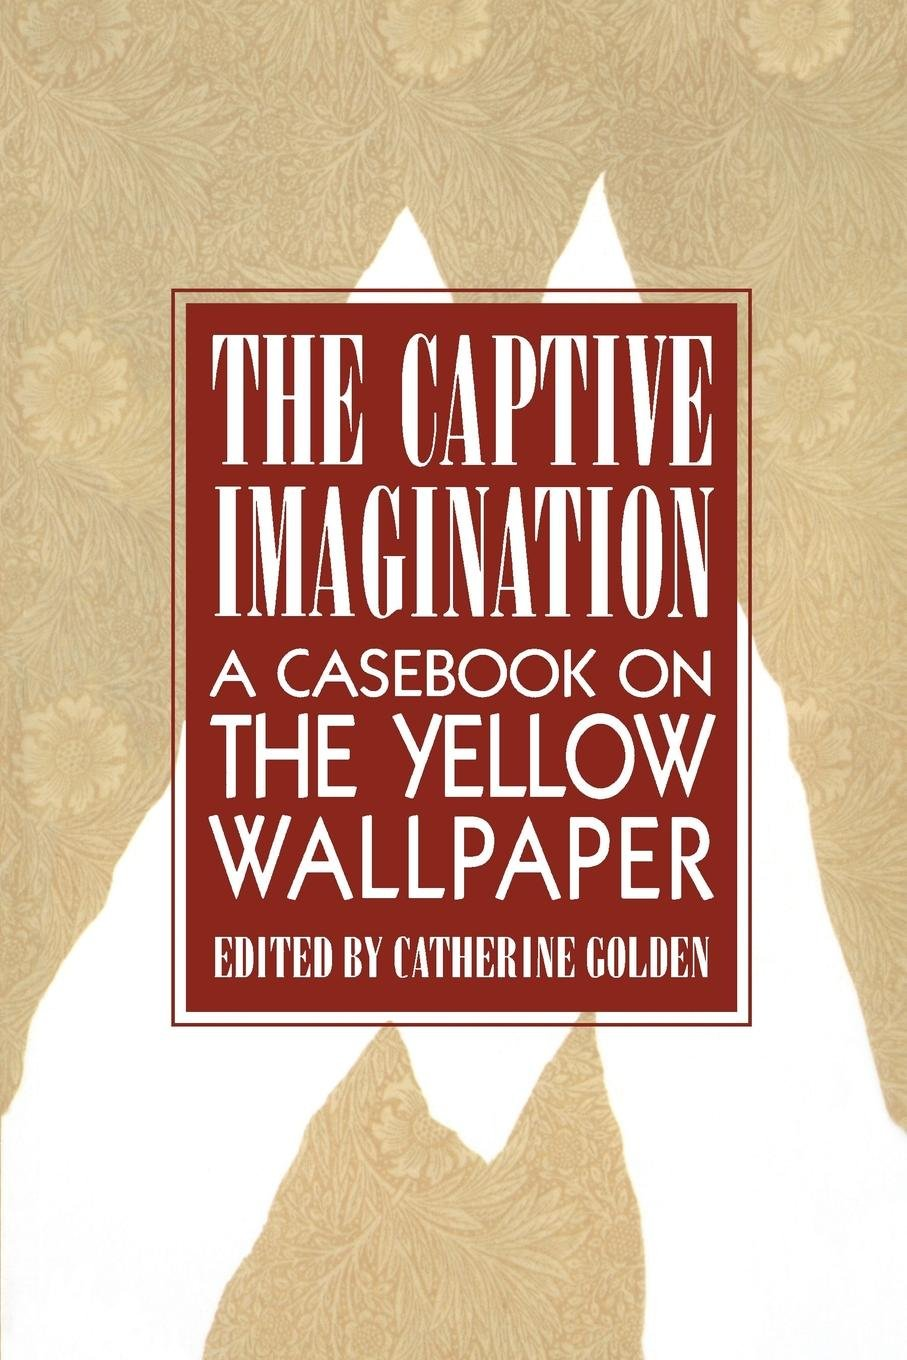 the captive imagination a casebook on the yellow